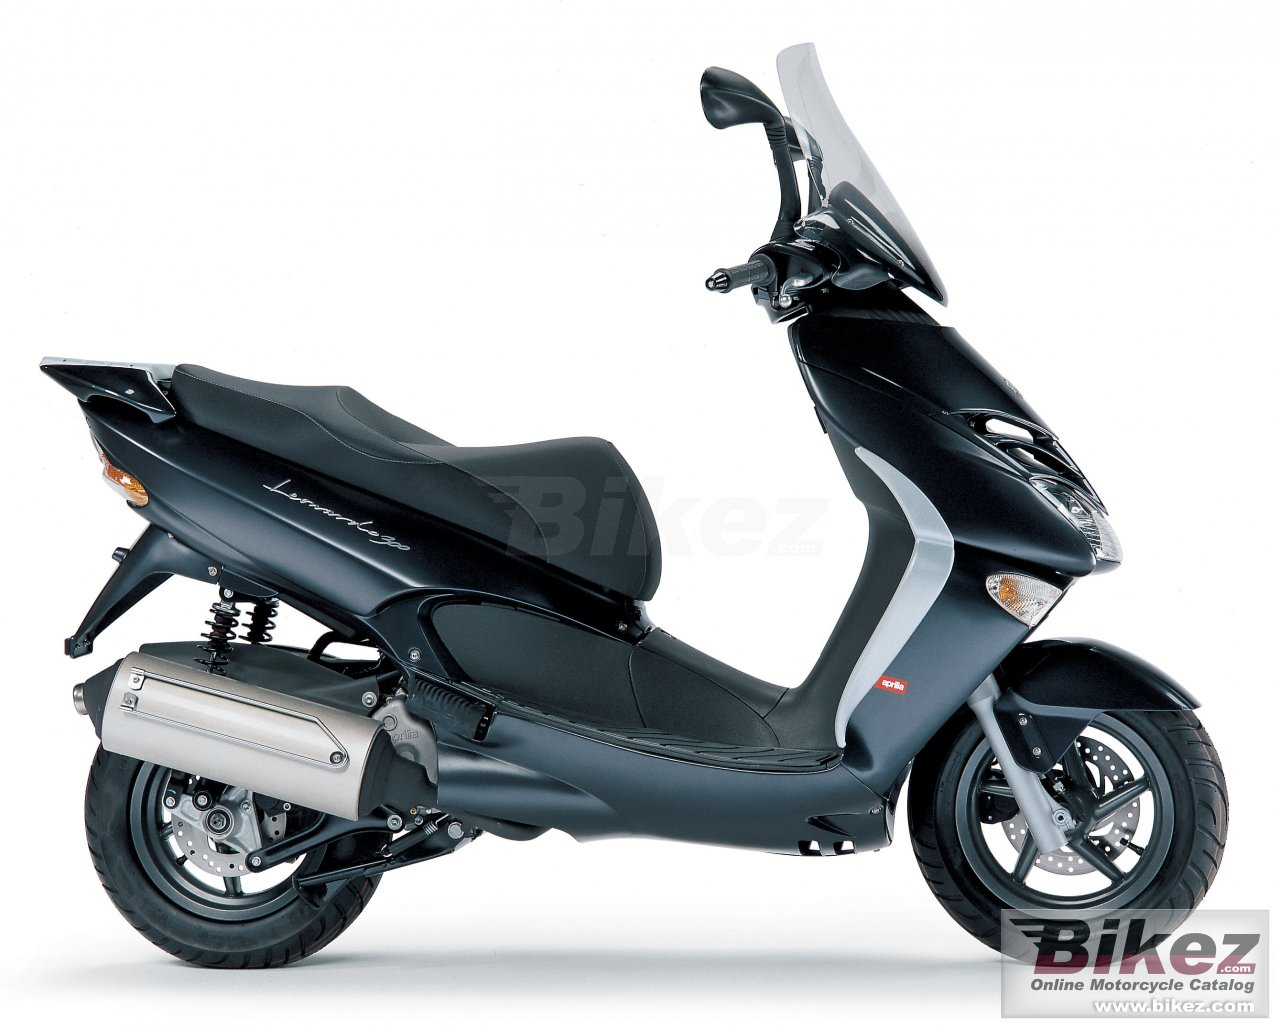 Big Aprilia leonardo 125 picture and wallpaper from Bikez.com